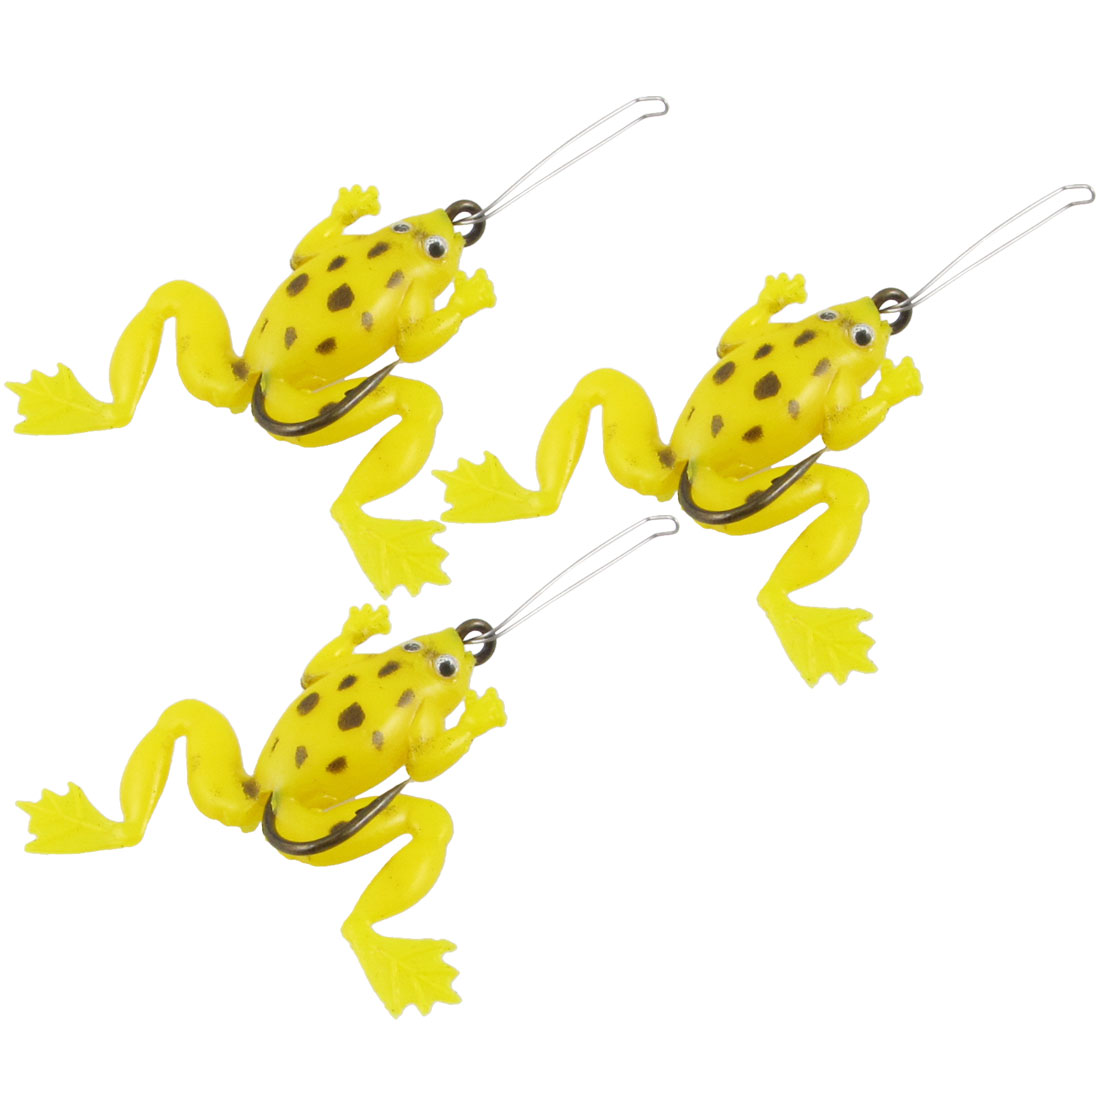 3 Pcs Manmade Yellow Silicone Frog Fishing Baits Lures Stosh Angling Tackle